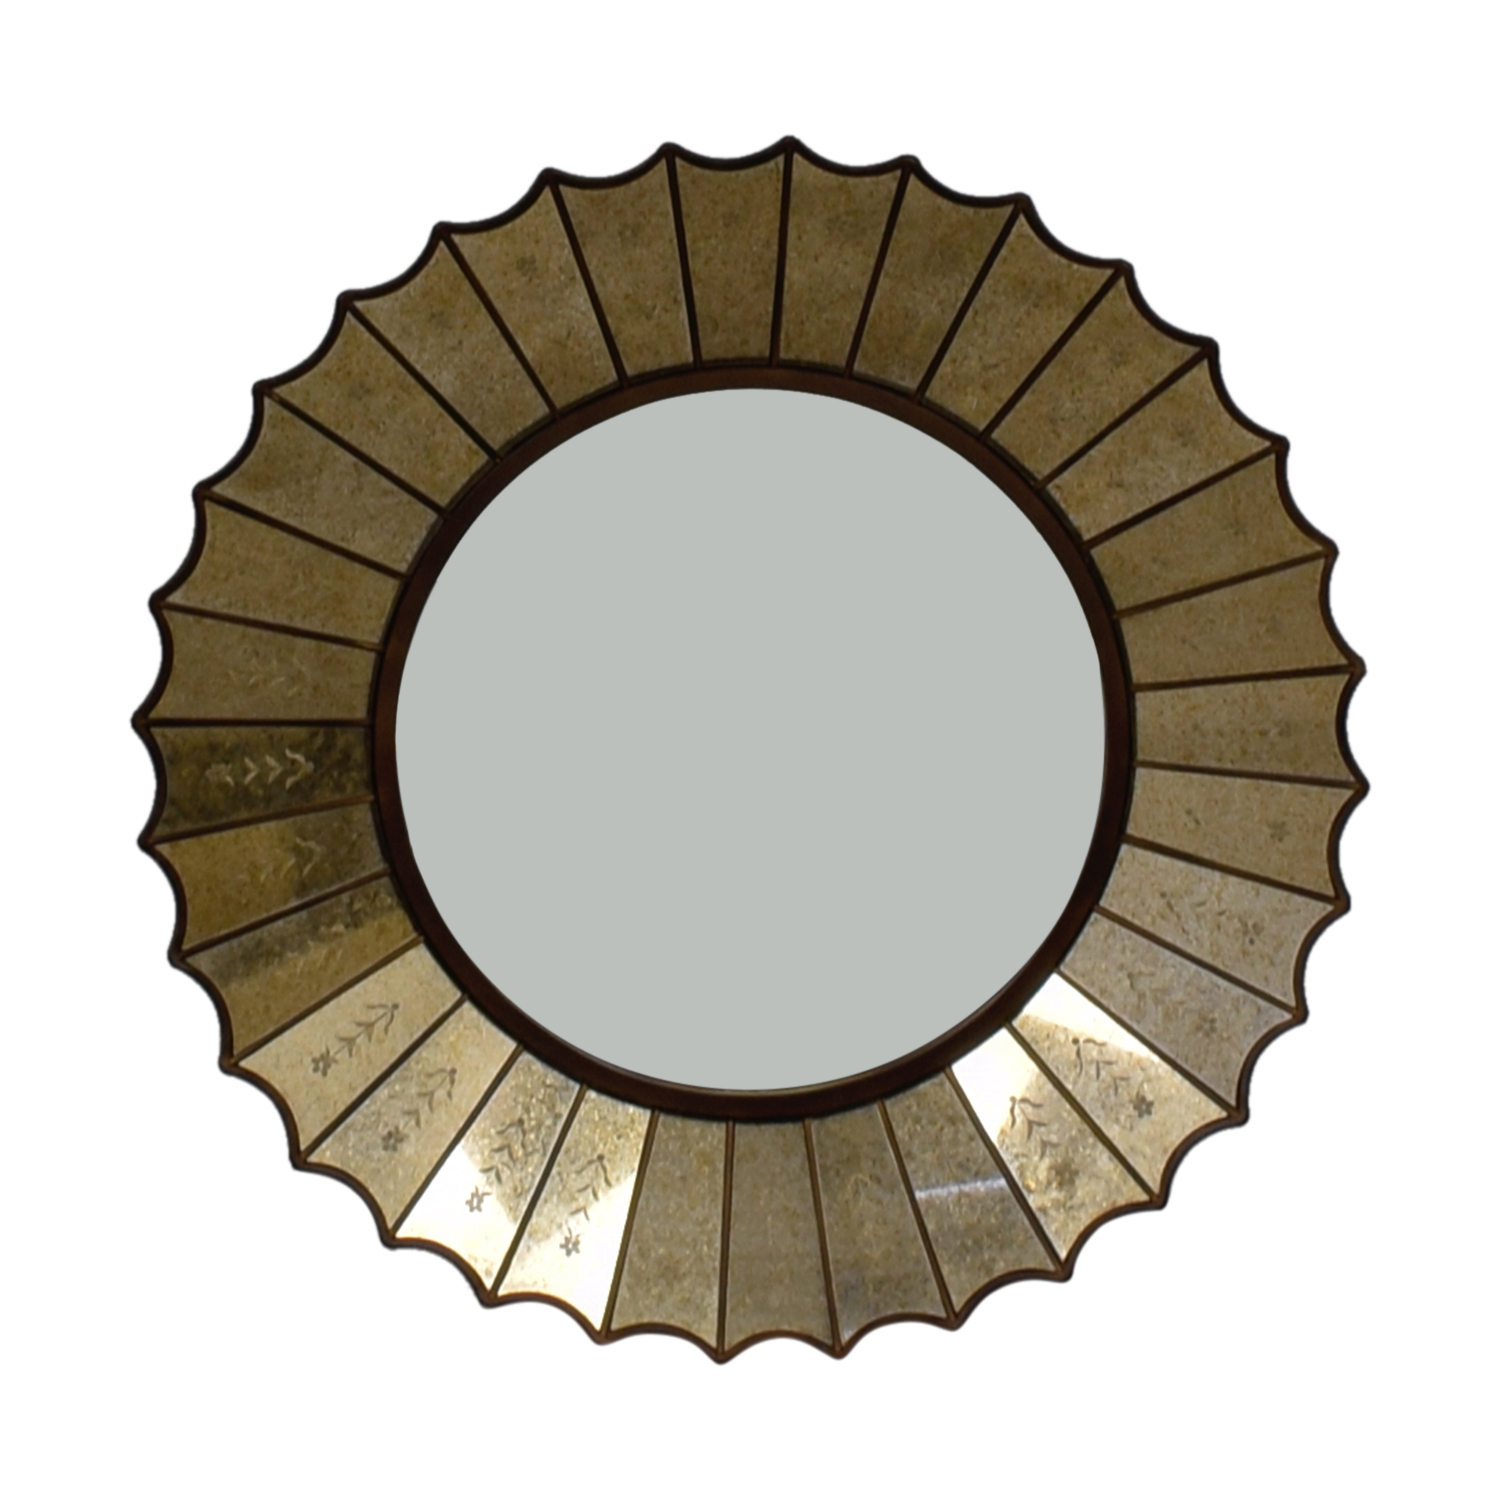 Horchow Horchow Round Decorative Mirror price